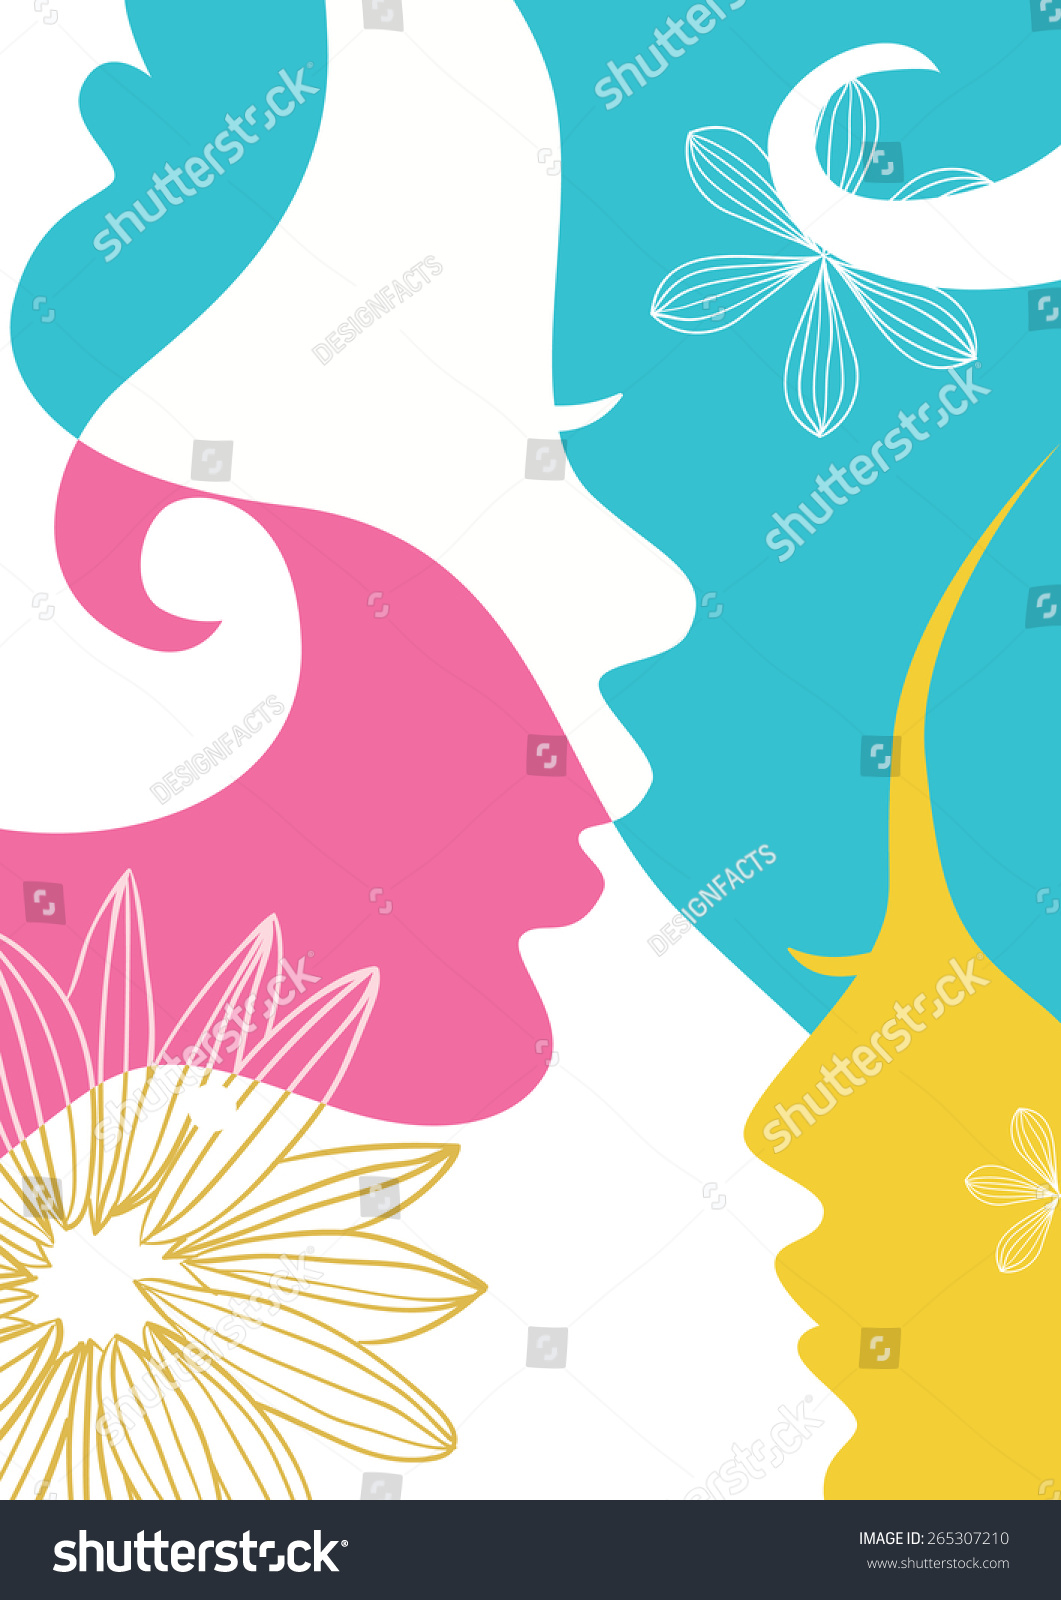 2395c8d724ff Illustration of colorful faces of young girls. Concept for International  Women s Day Celebration in March